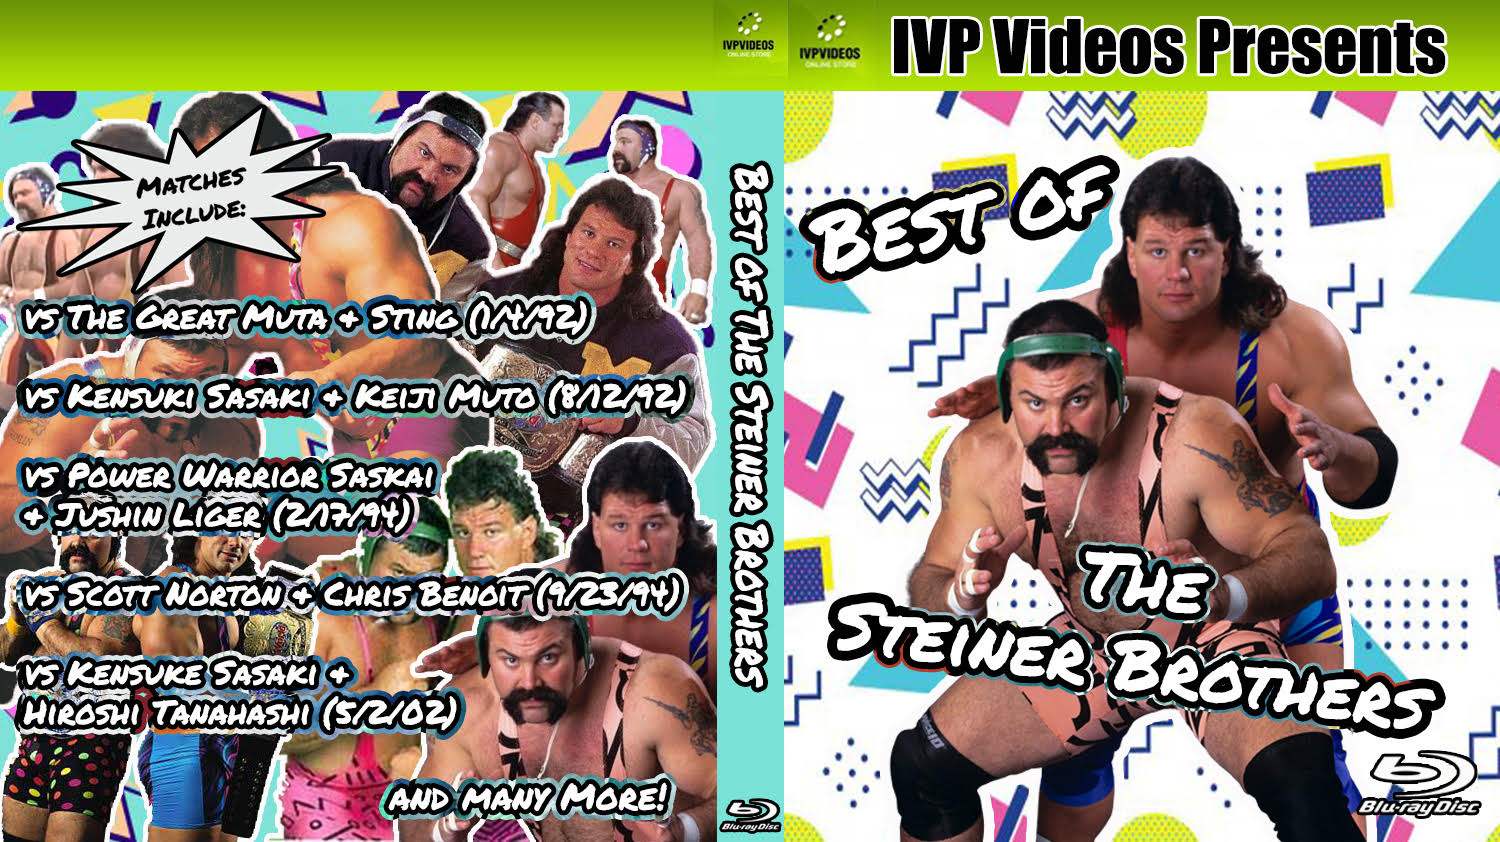 Best of Steiner Brothers (Blu-Ray with Cover Art)